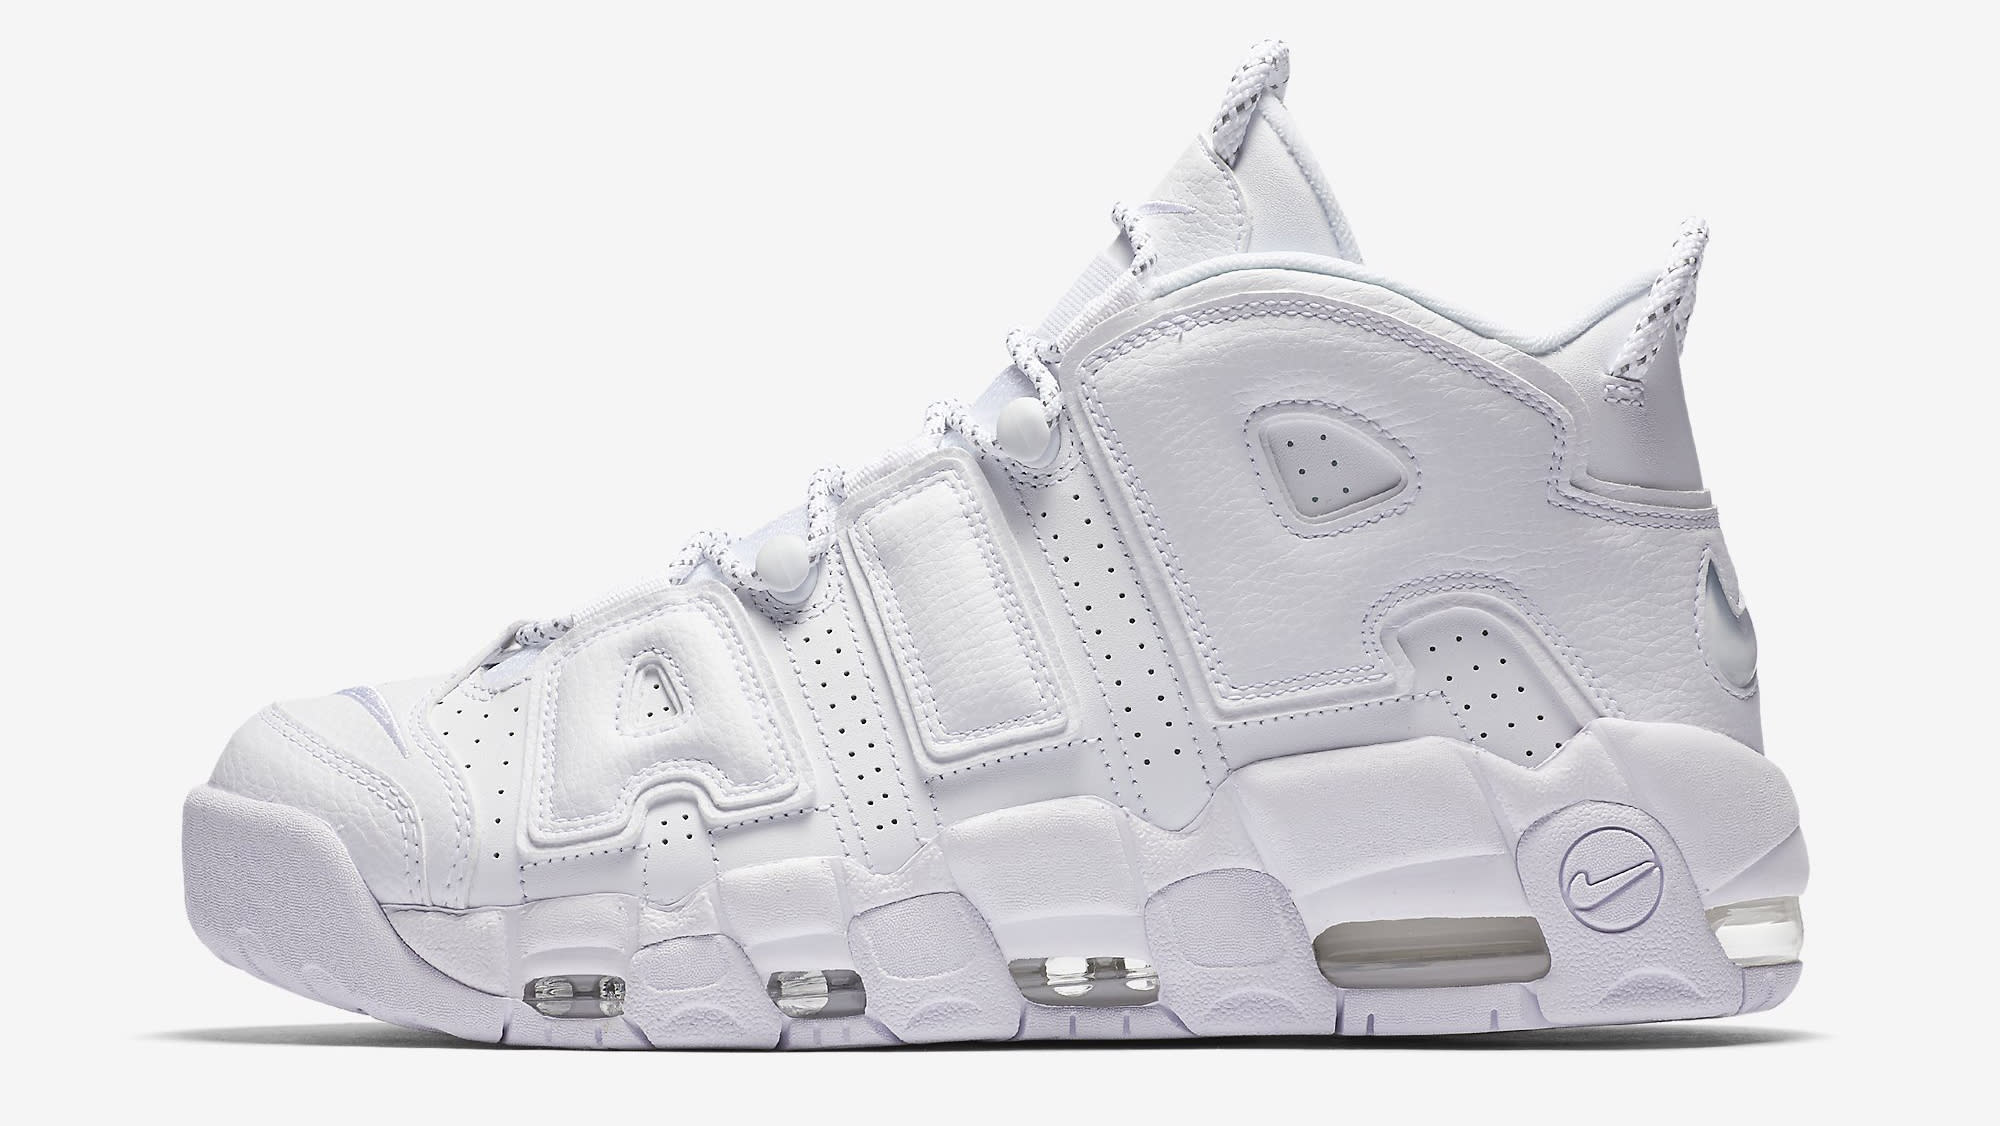 Triple White Nike Air More Uptempo 921948-100 Profile